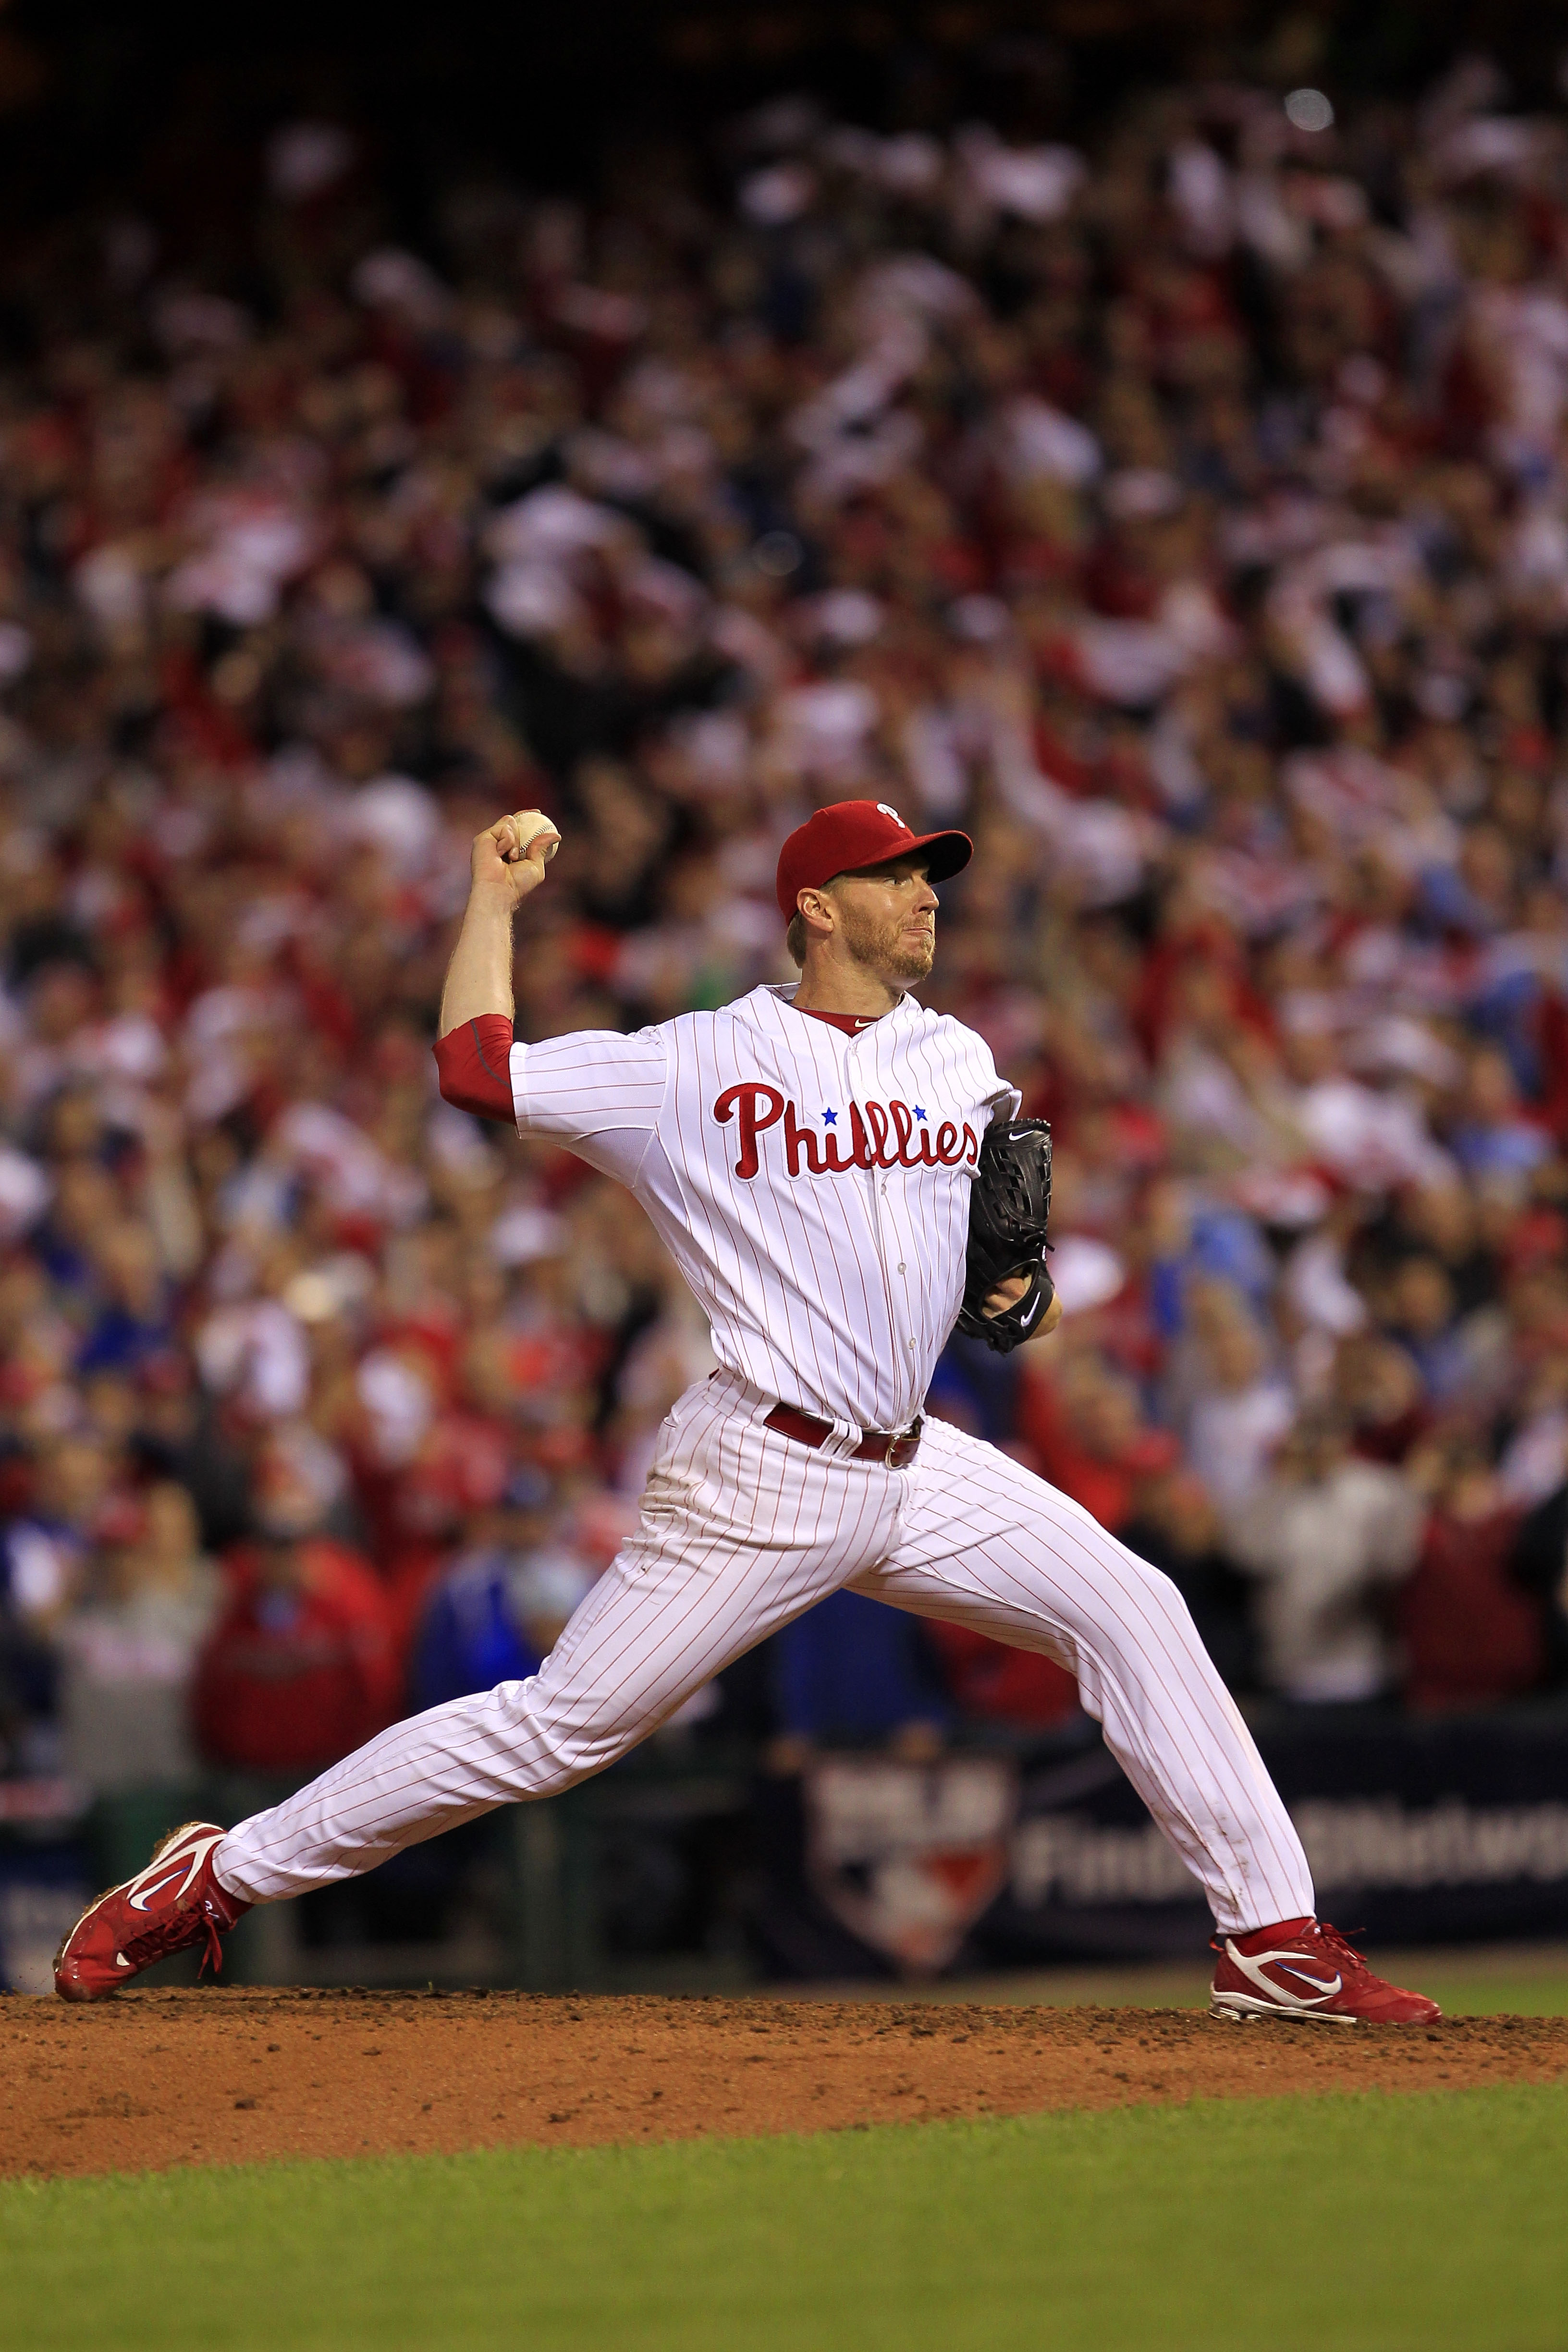 PHILADELPHIA - OCTOBER 06: Roy Halladay #34 of the Philadelphia Phillies pitches in the ninth inning during his no-hitter in Game 1 of the NLDS against the Cincinnati Reds at Citizens Bank Park on October 6, 2010 in Philadelphia, Pennsylvania.The Phillies